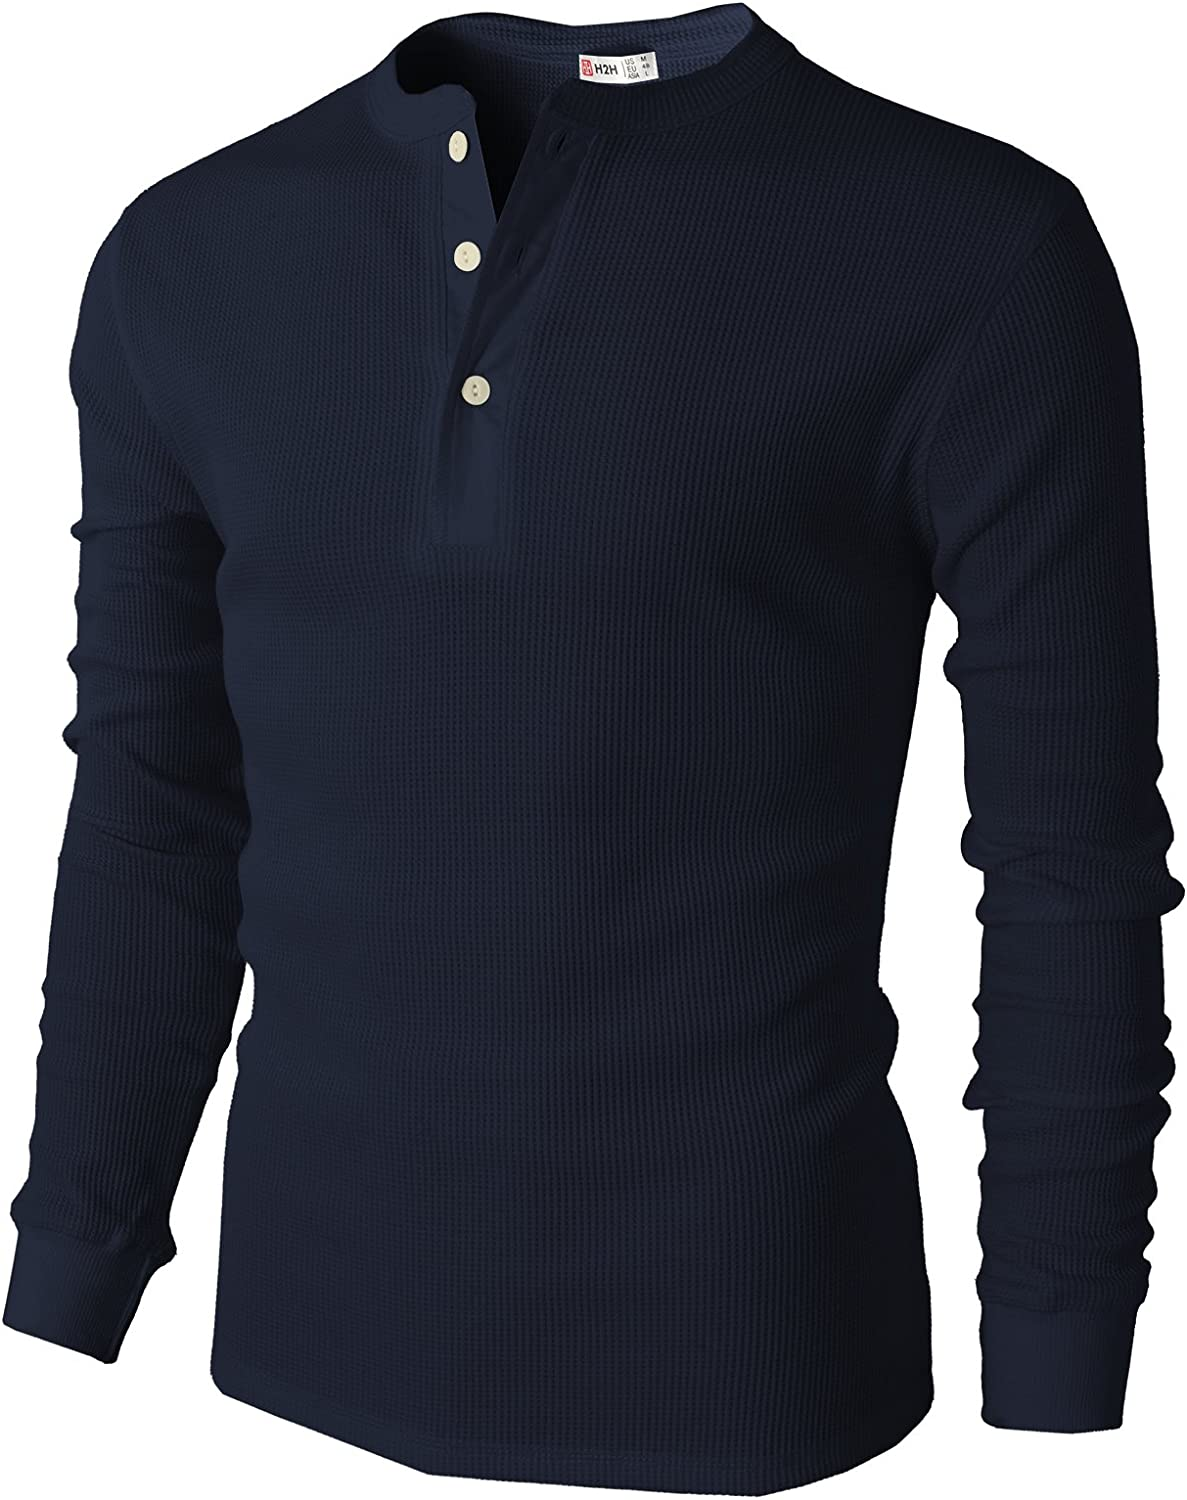 H2H Mens Casual Slim Fit Henley Long Sleeve T Shirts of Waffle Cotton: Clothing